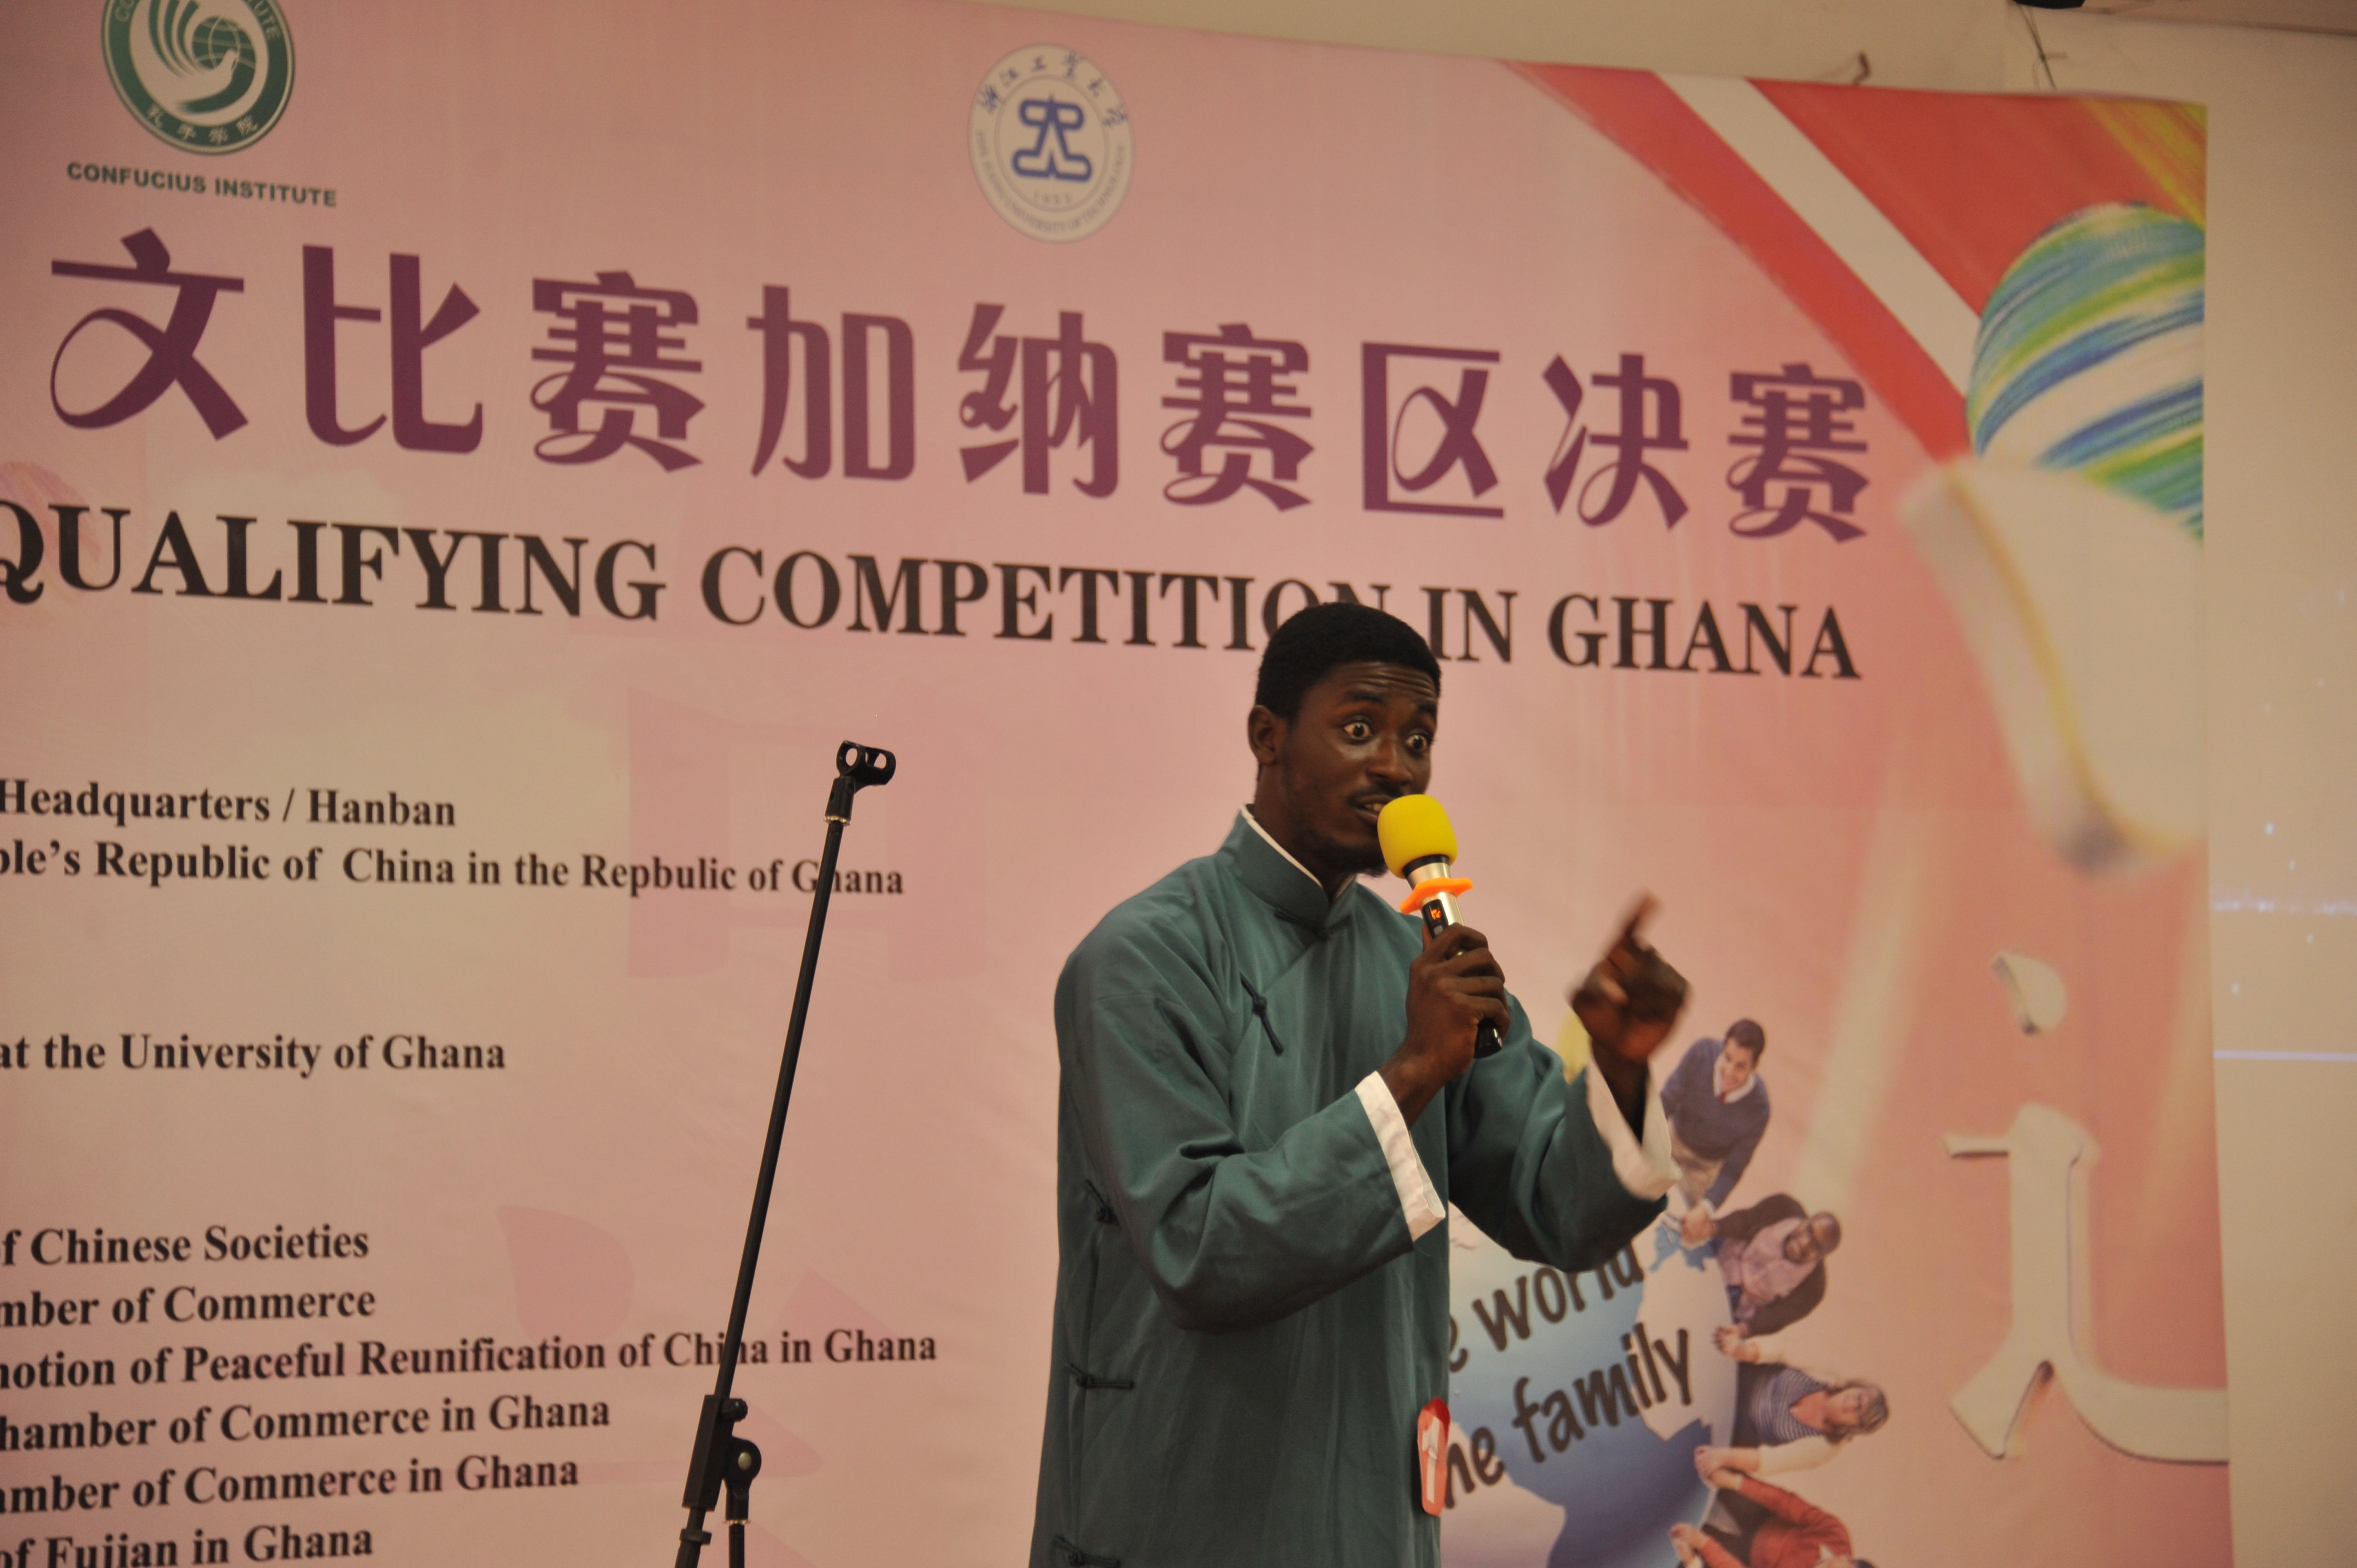 Feature: Learning Chinese language increasingly popular among young Ghanaians - Xinhua | English.news.cn